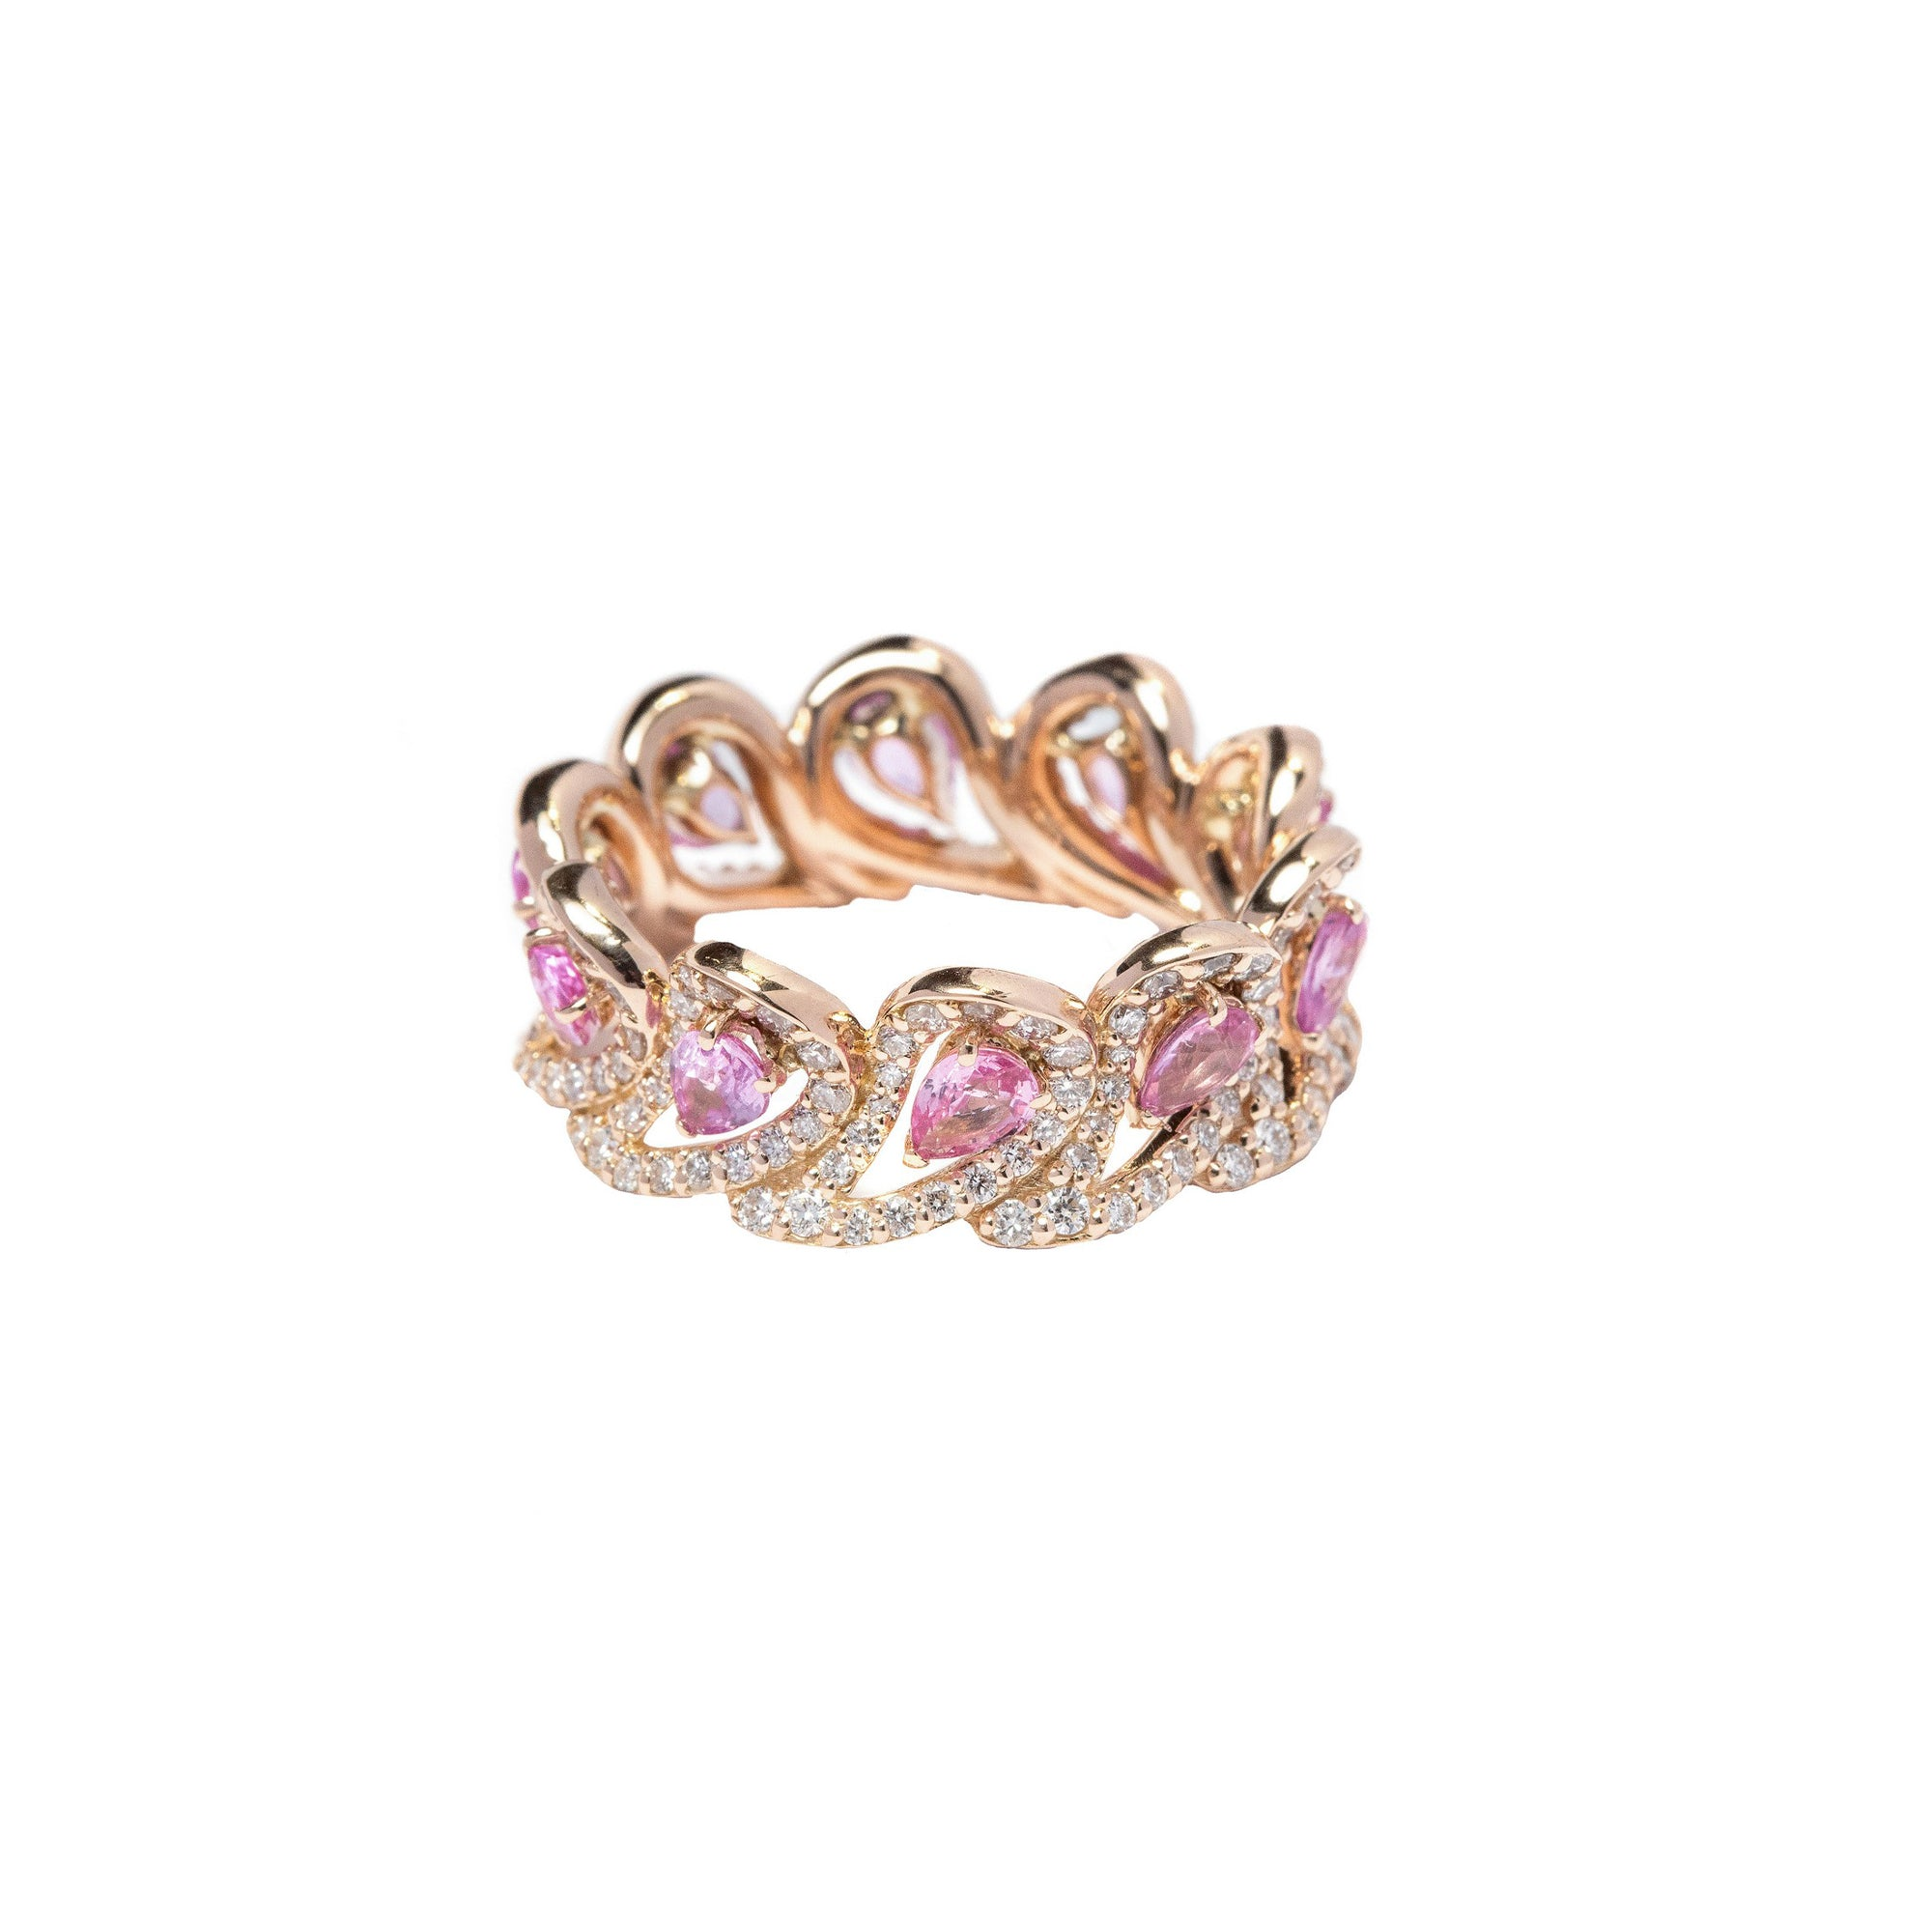 Era Rose Gold Ring With Pink Sapphires Diamonds